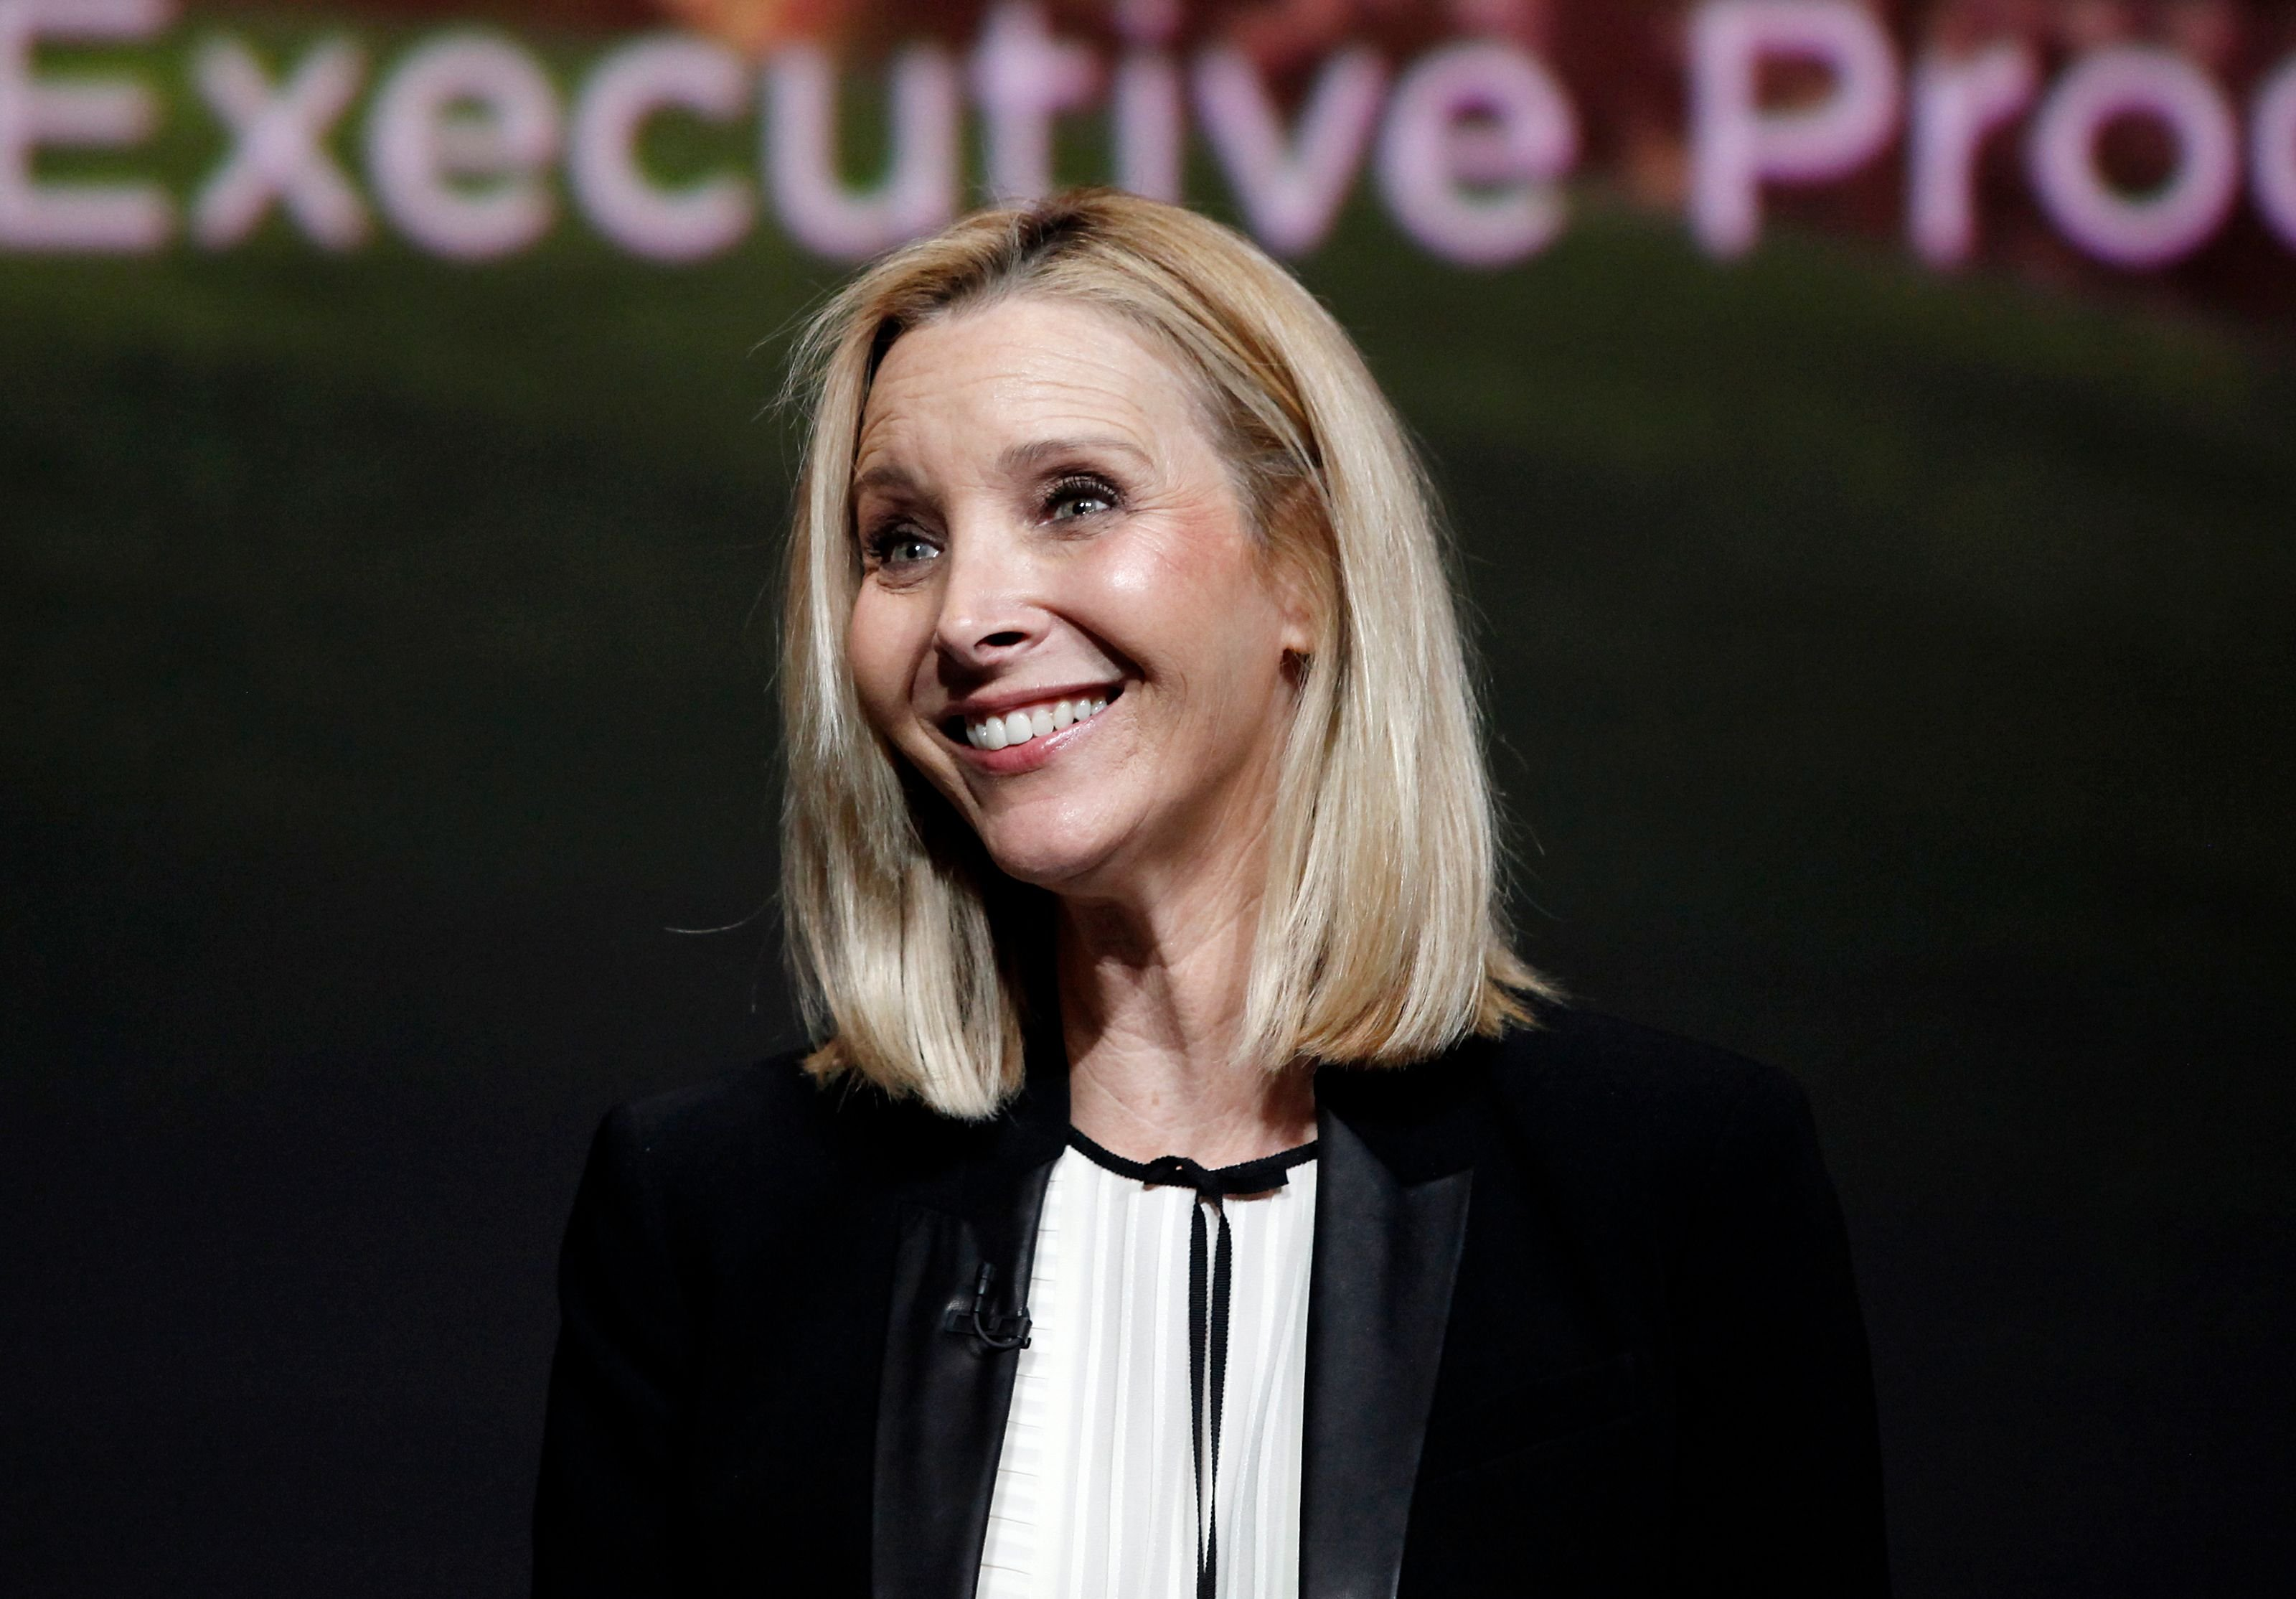 Lisa Kudrow at the 'Who Do You Think You Are?' FYC Event at Wolf Theatre on June 5, 2018 in North Hollywood, California. | Photo: Getty Images